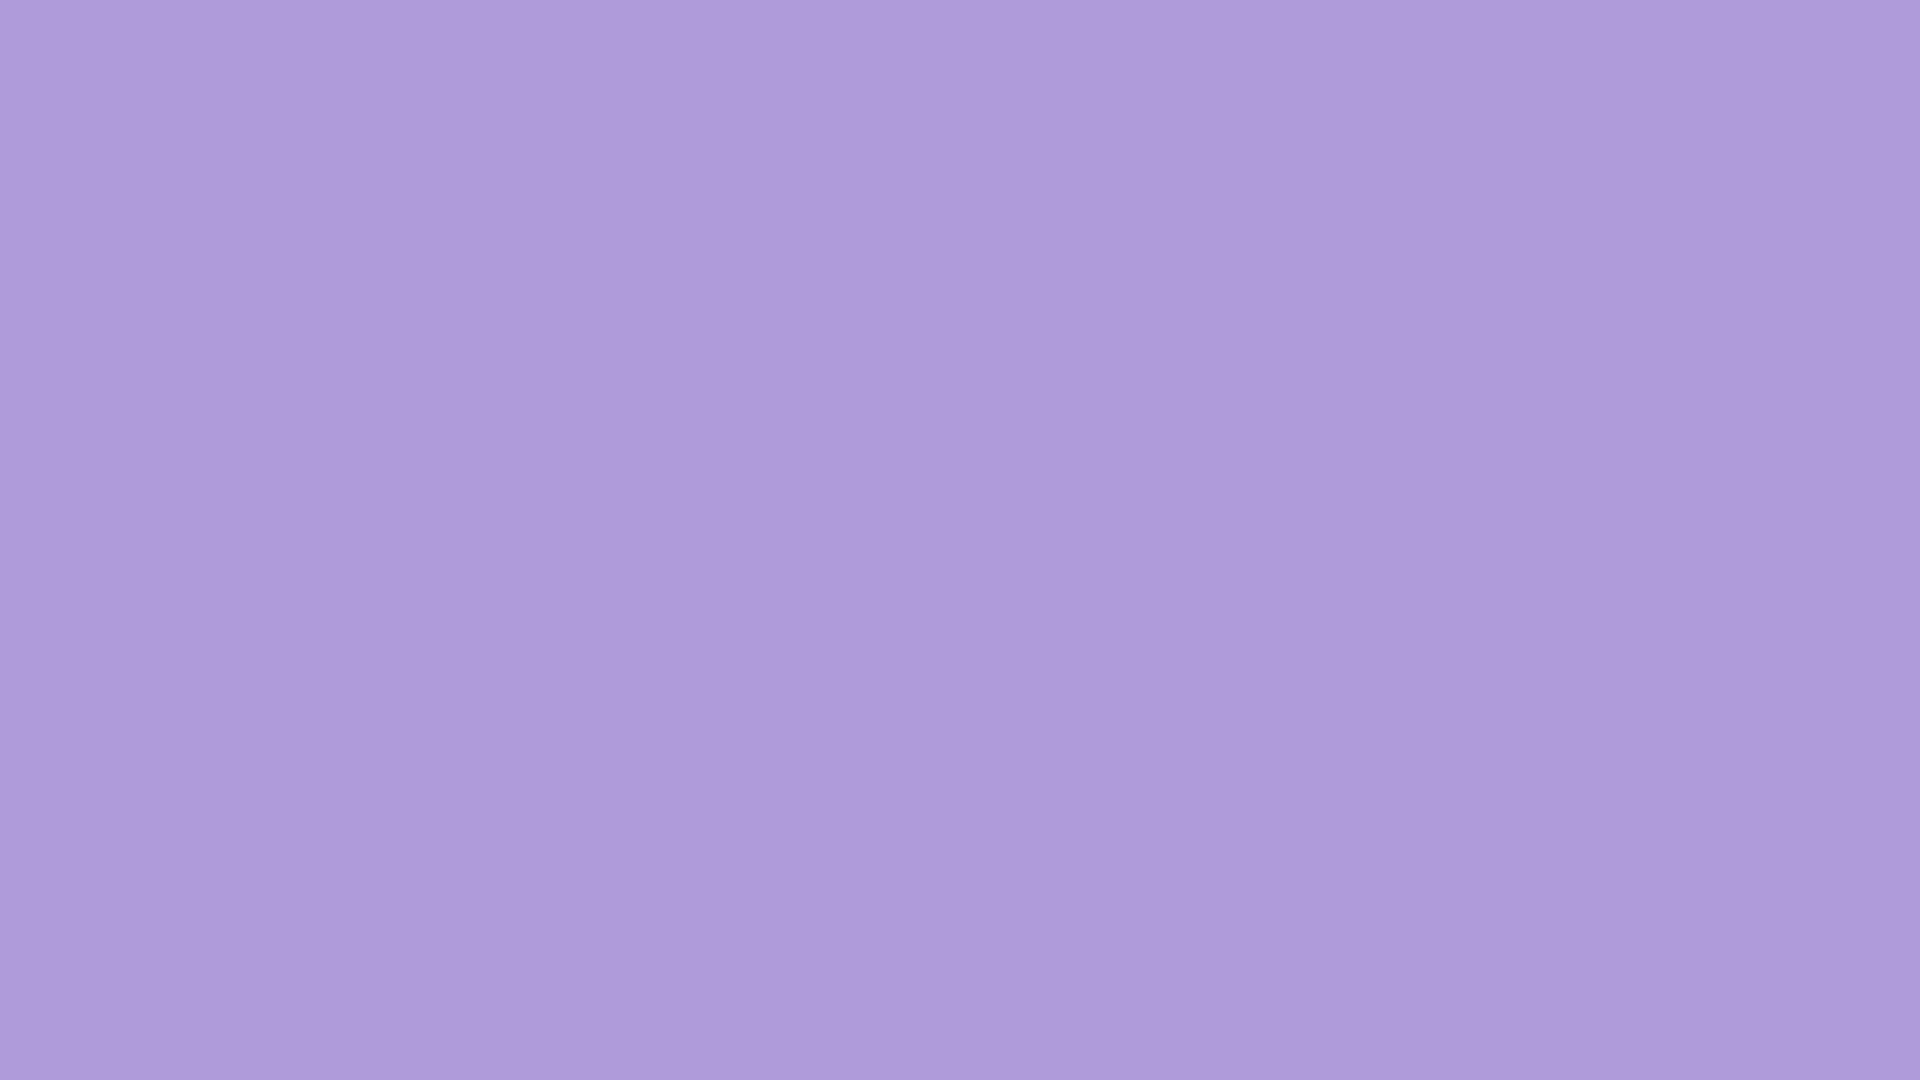 Pastel Purple Wallpaper Wide - Scerbos com